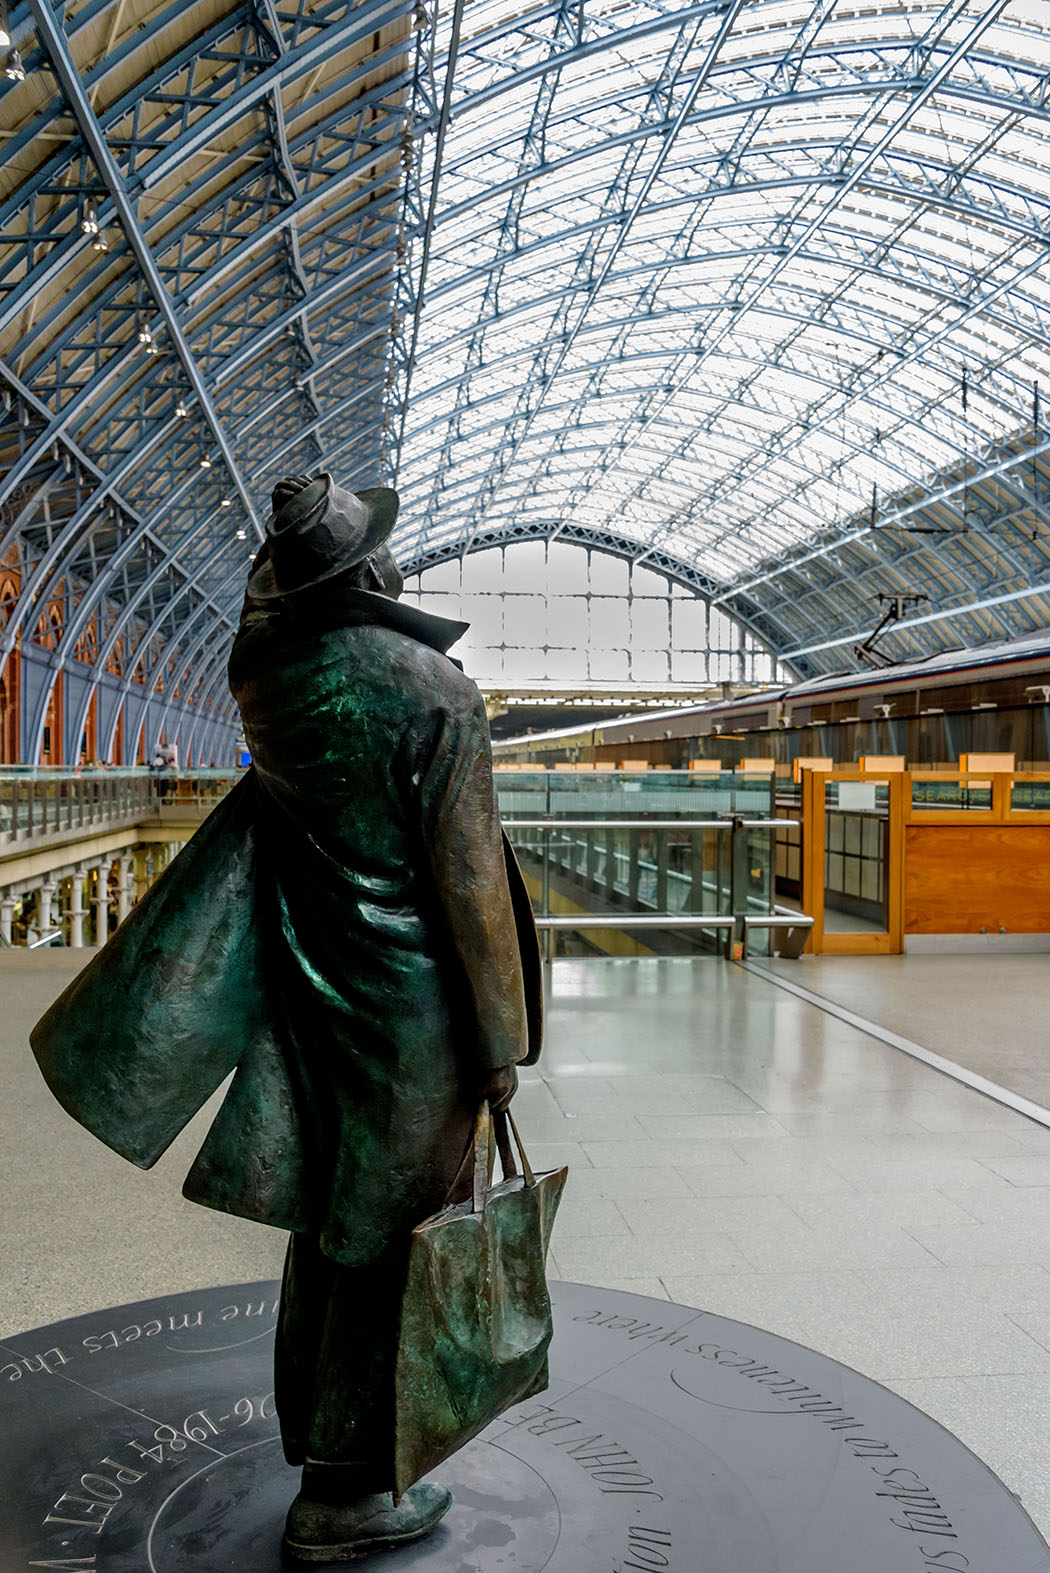 The_traveller_at_St_Pancress%255B1%255D.JPG